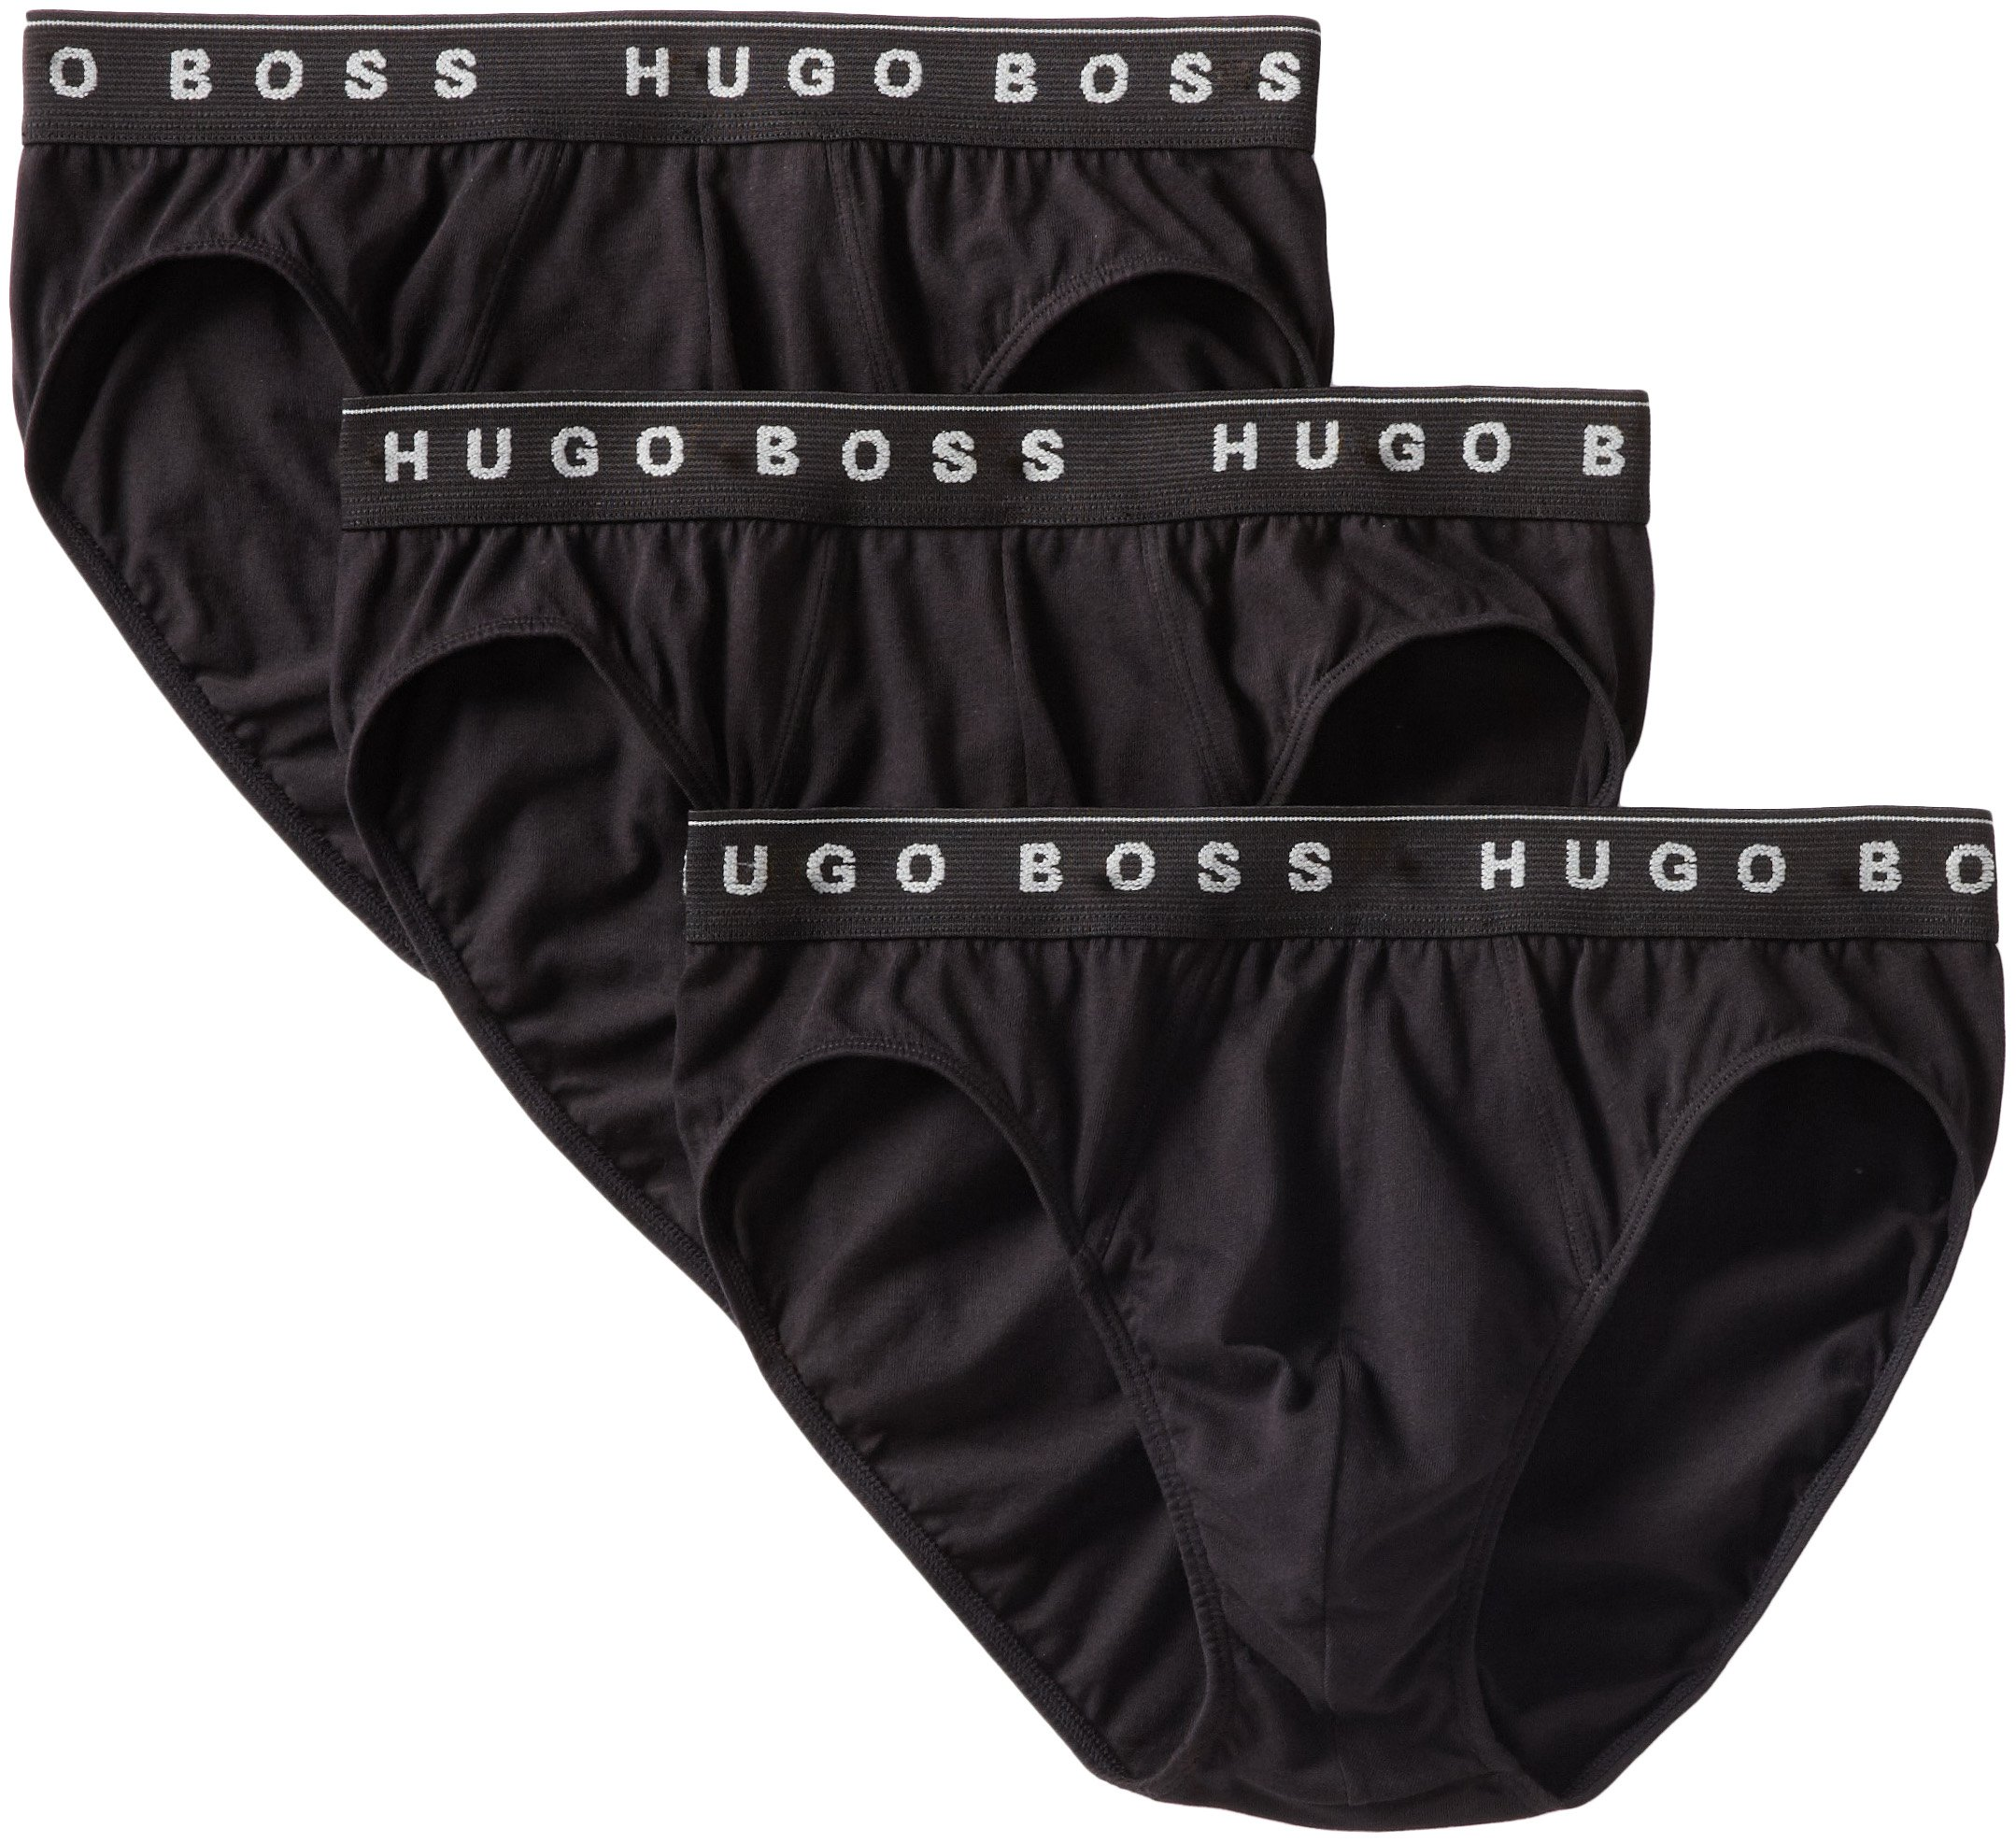 Hugo Boss BOSS Men's Cotton 3 Pack Mini Brief, Black, Medium